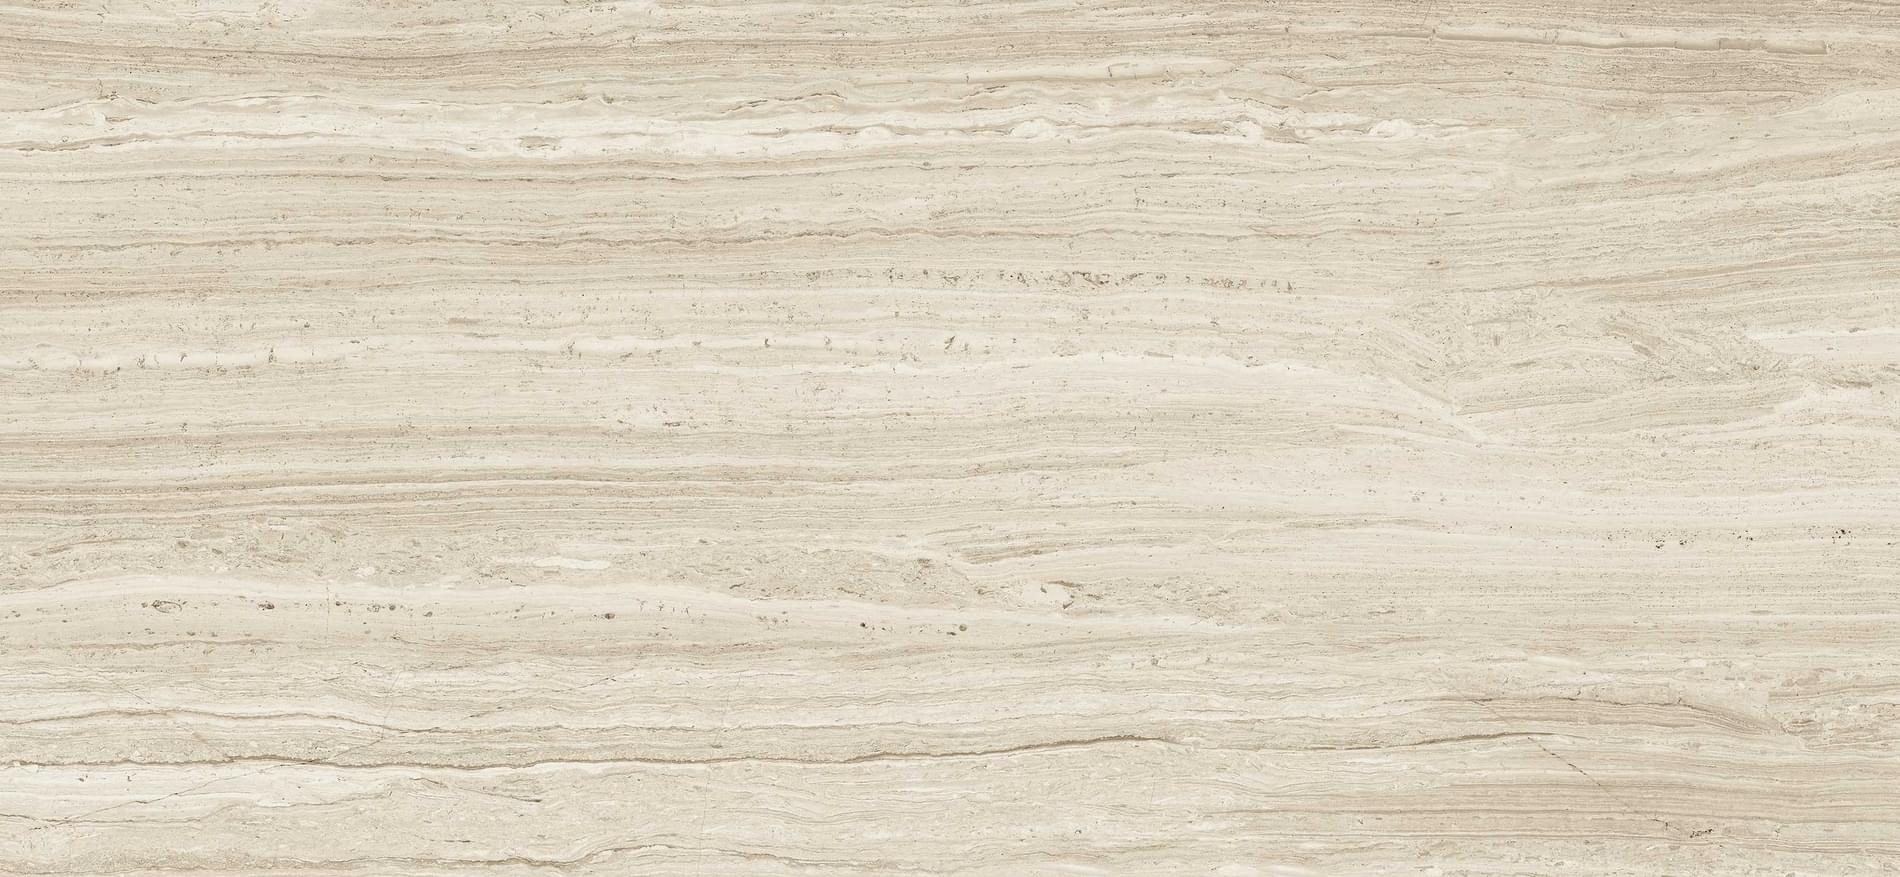 Grespania Silk Coverlam Beige Pul 5.6 mm 120x260